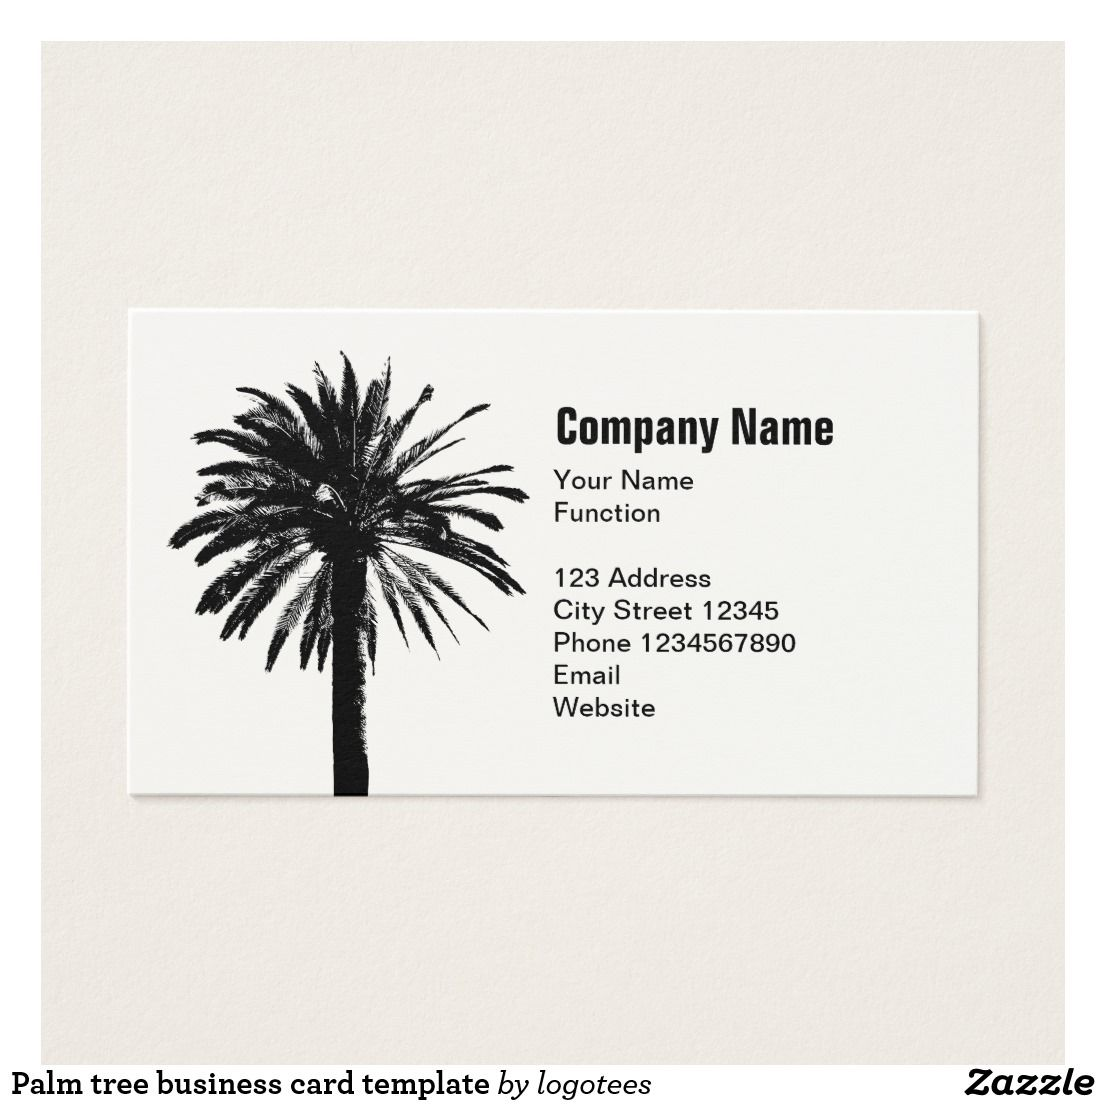 Palm tree business card template card templates template and business palm tree business card template colourmoves